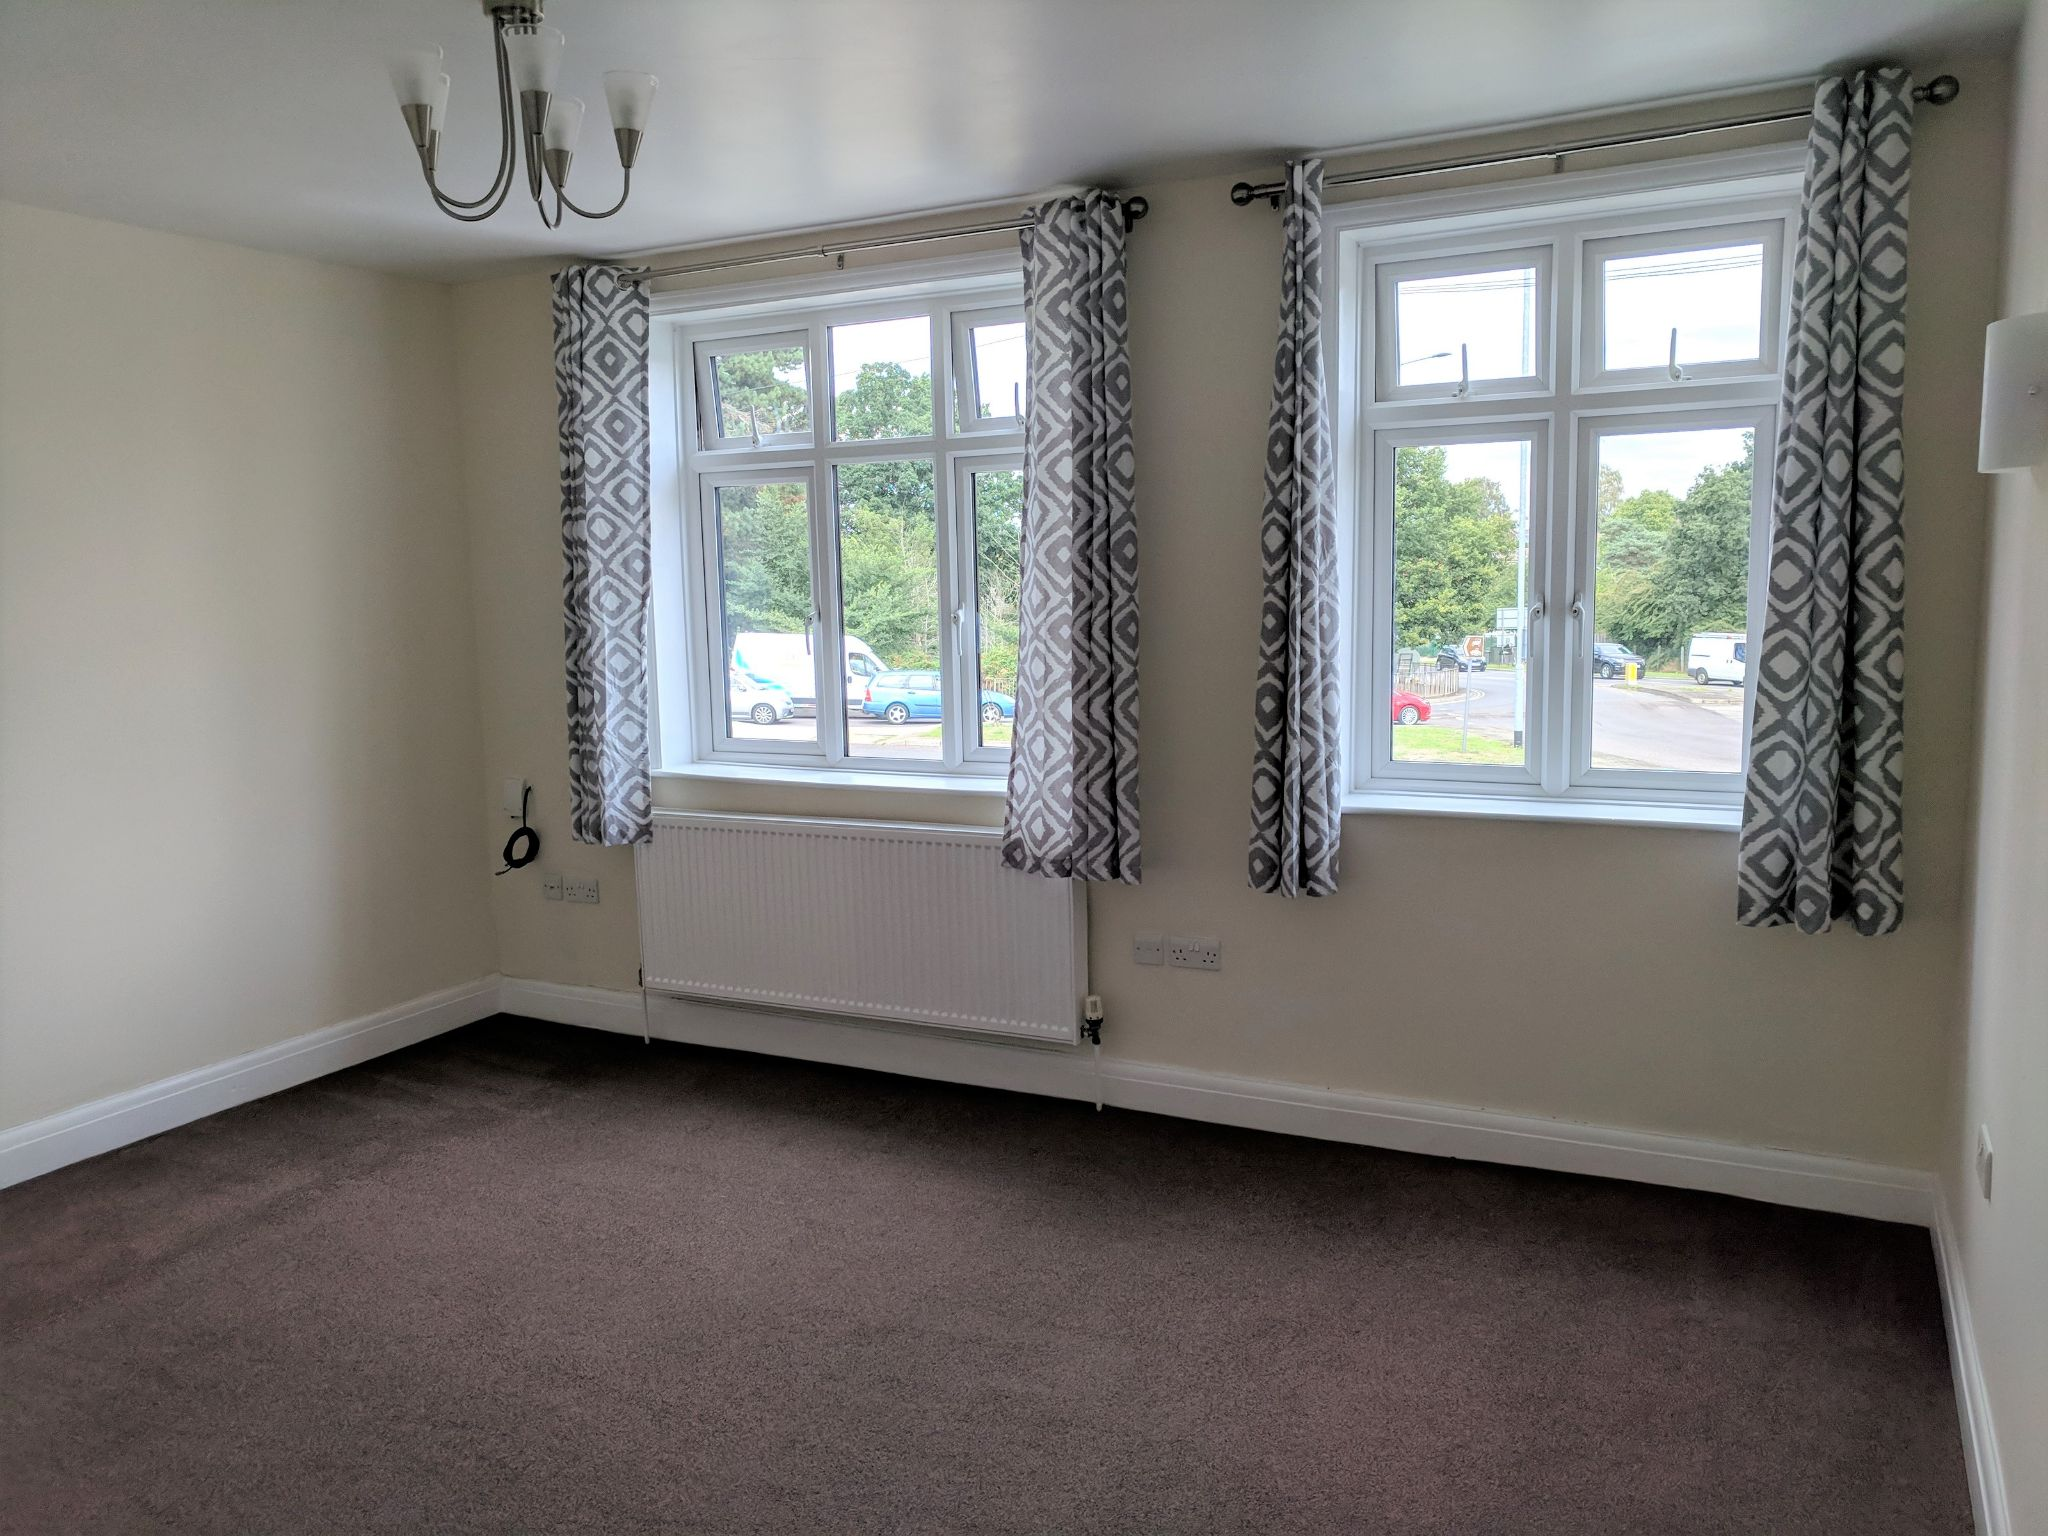 2 bedroom flat flat/apartment Let Agreed in Ipswich - Property photograph